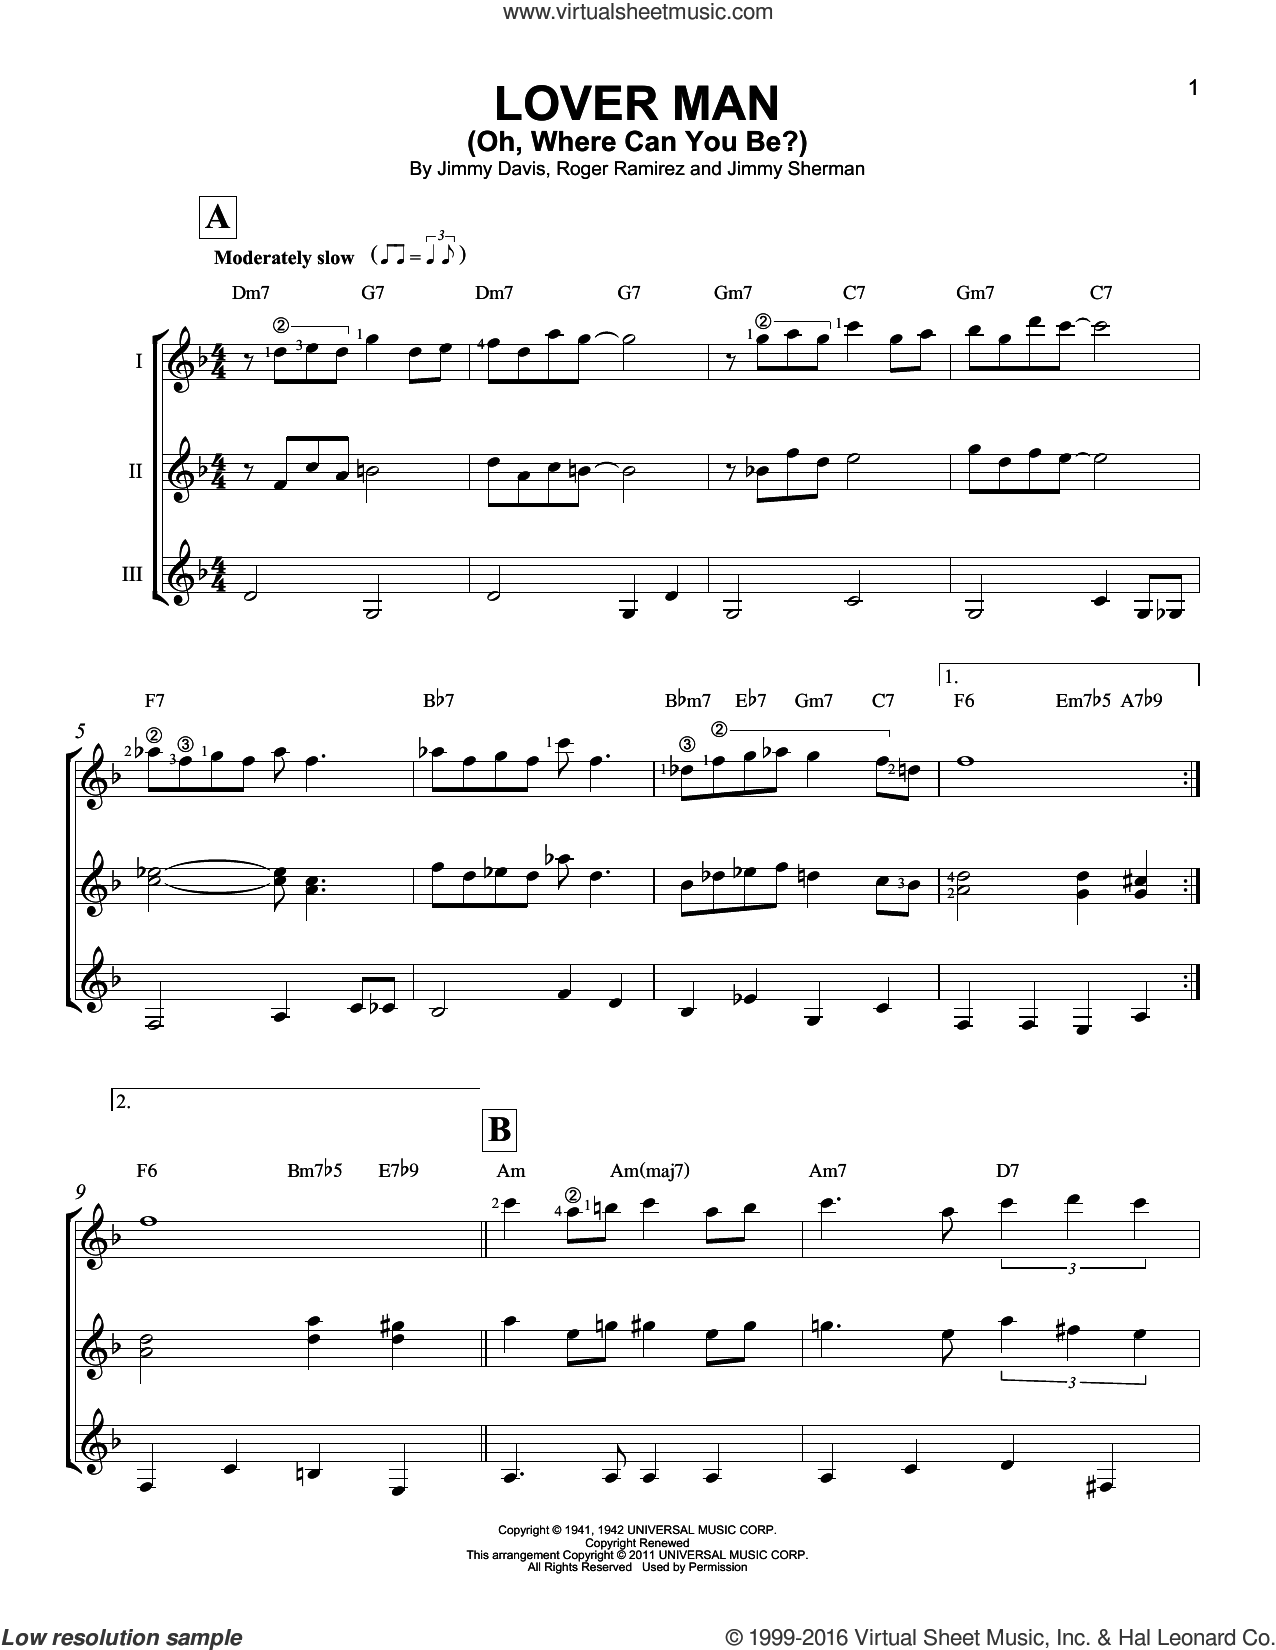 Lover Man (Oh, Where Can You Be?) sheet music for guitar ensemble by Billie Holiday, Jimmie Davis, Jimmy Sherman and Roger Ramirez, intermediate